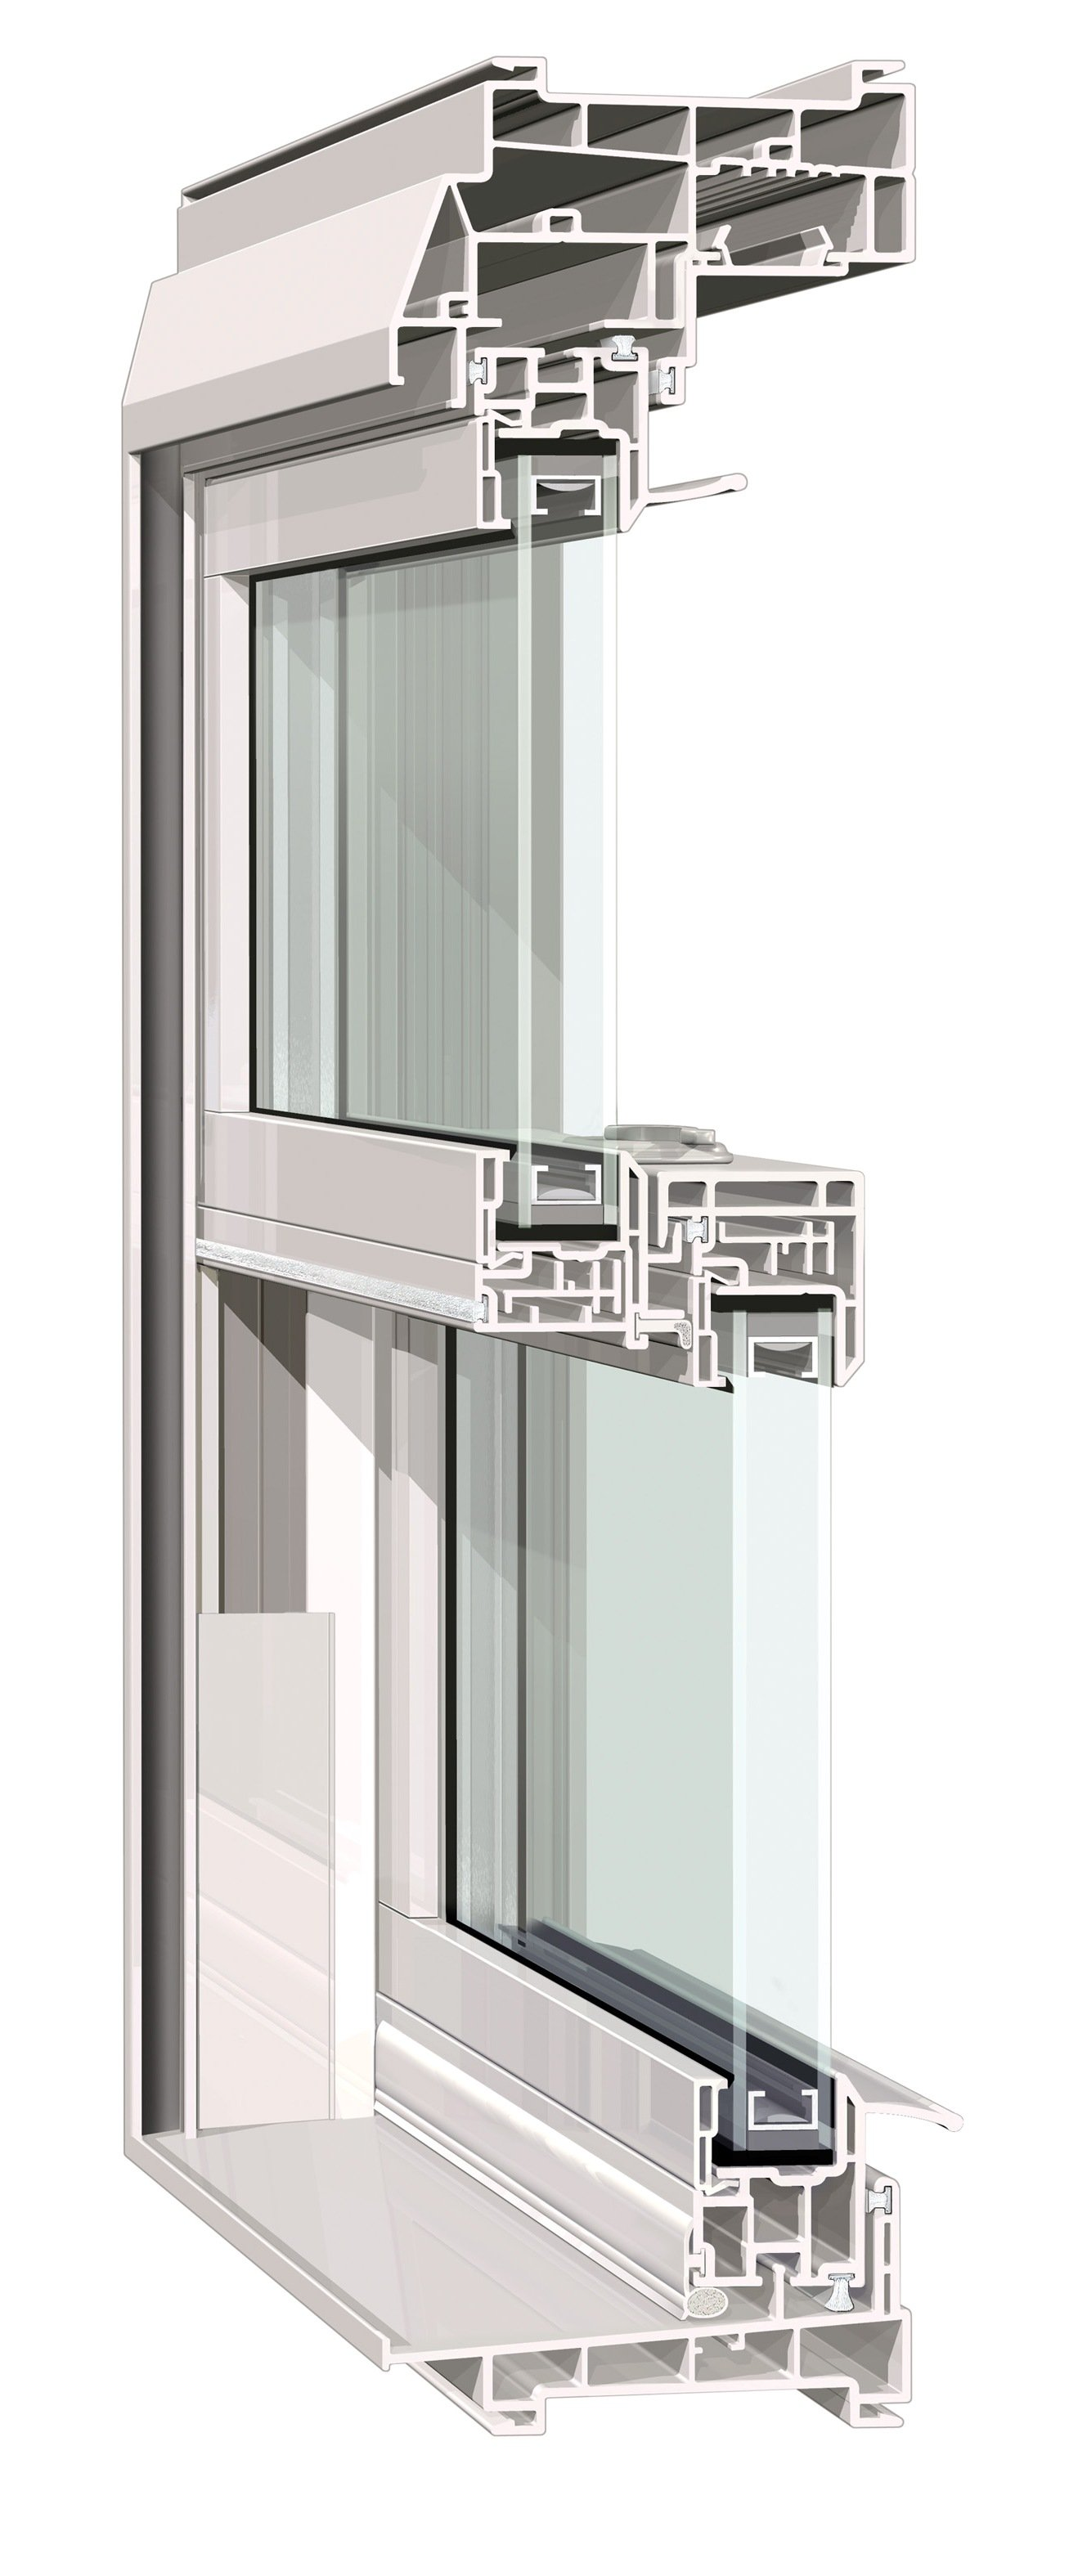 Double hung window installation in Springdale and Fort Smith AR